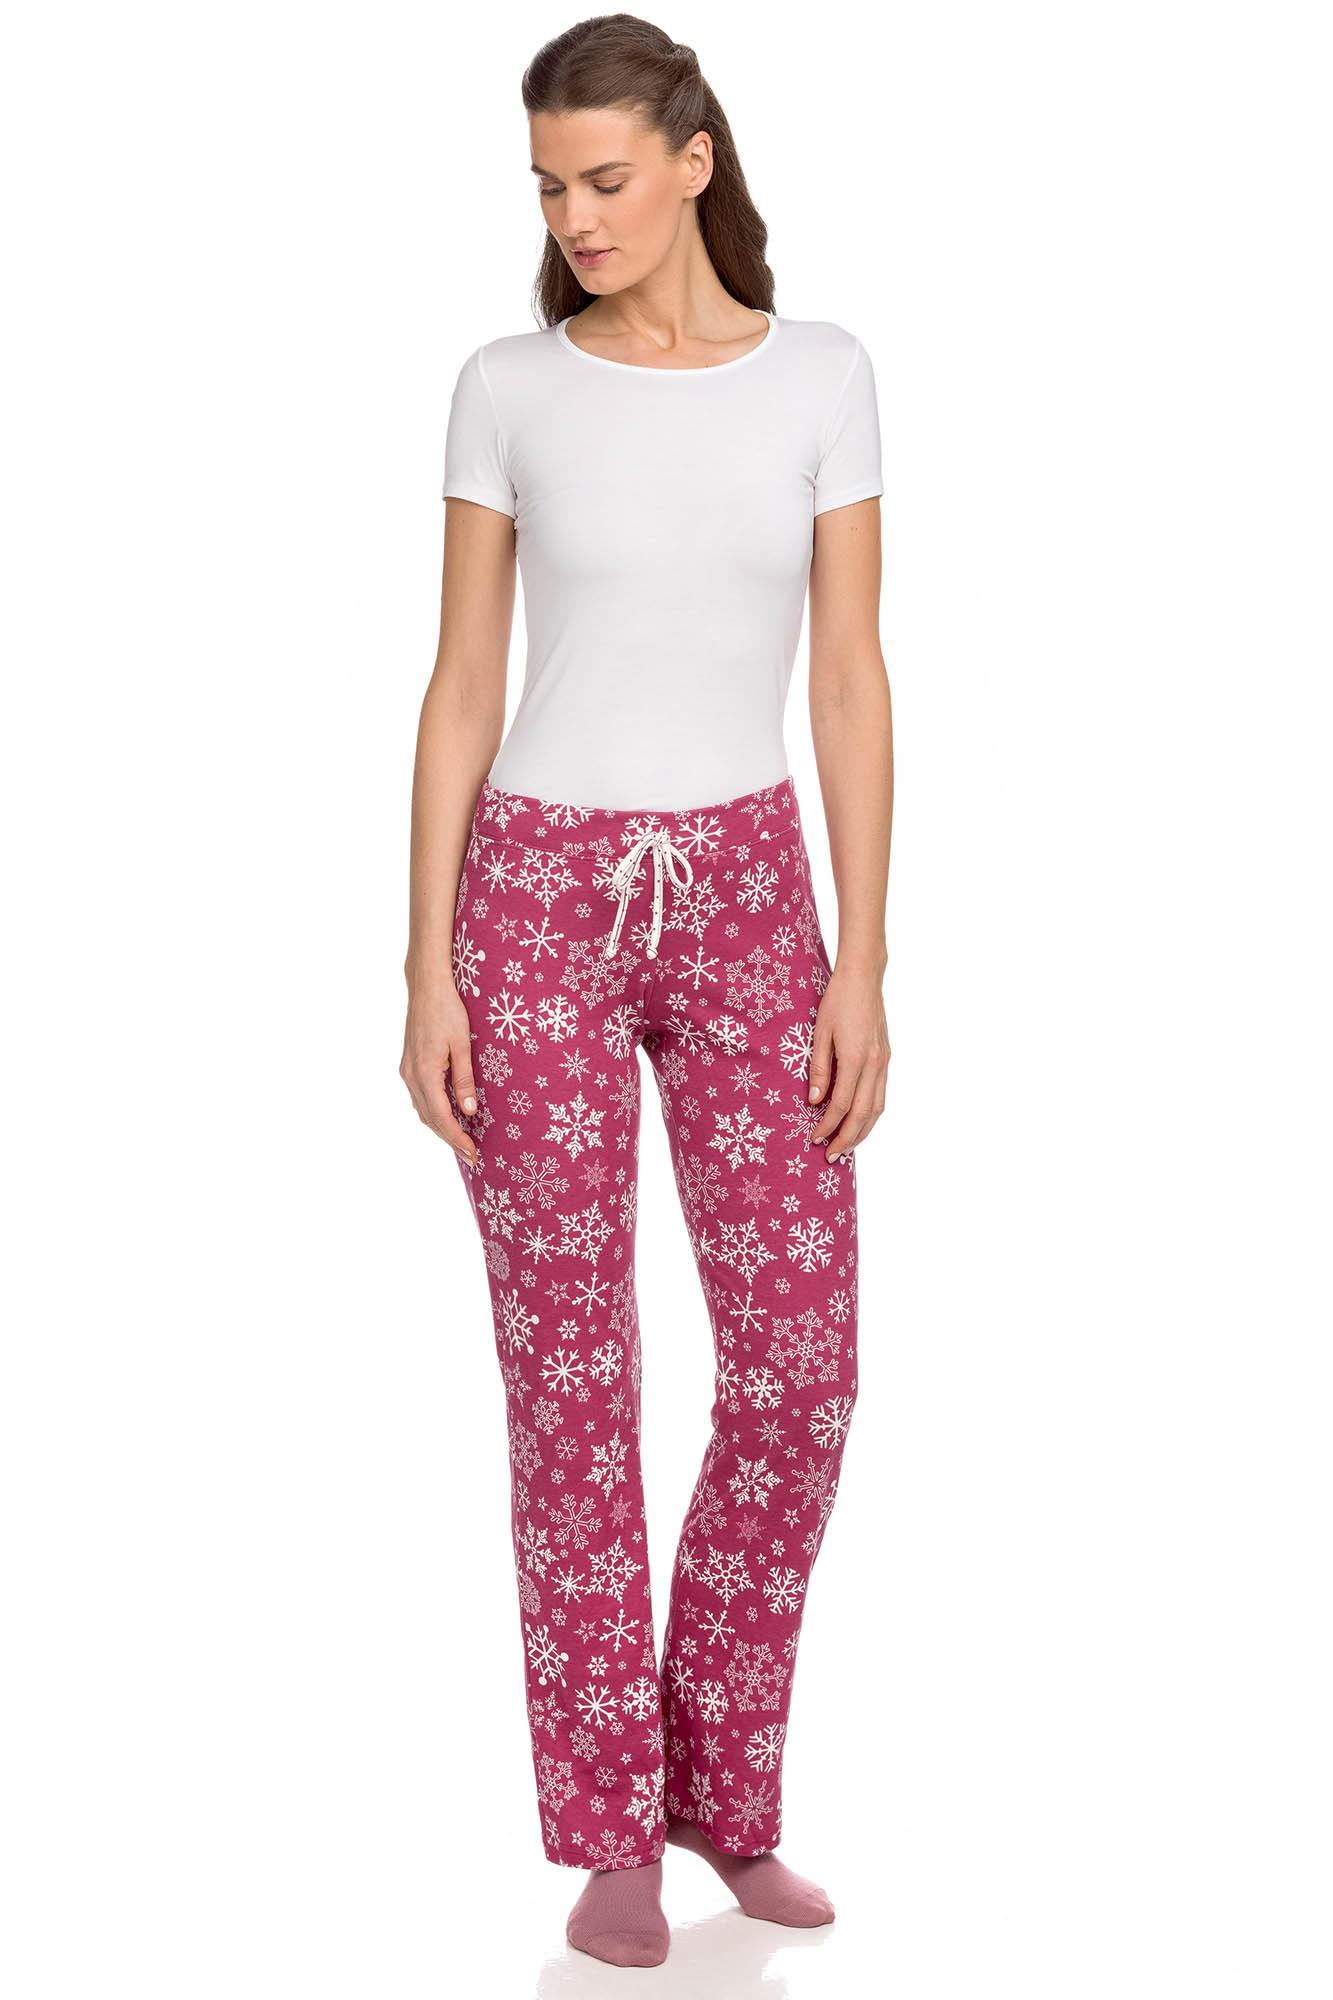 Women's Cotton Print Bottoms